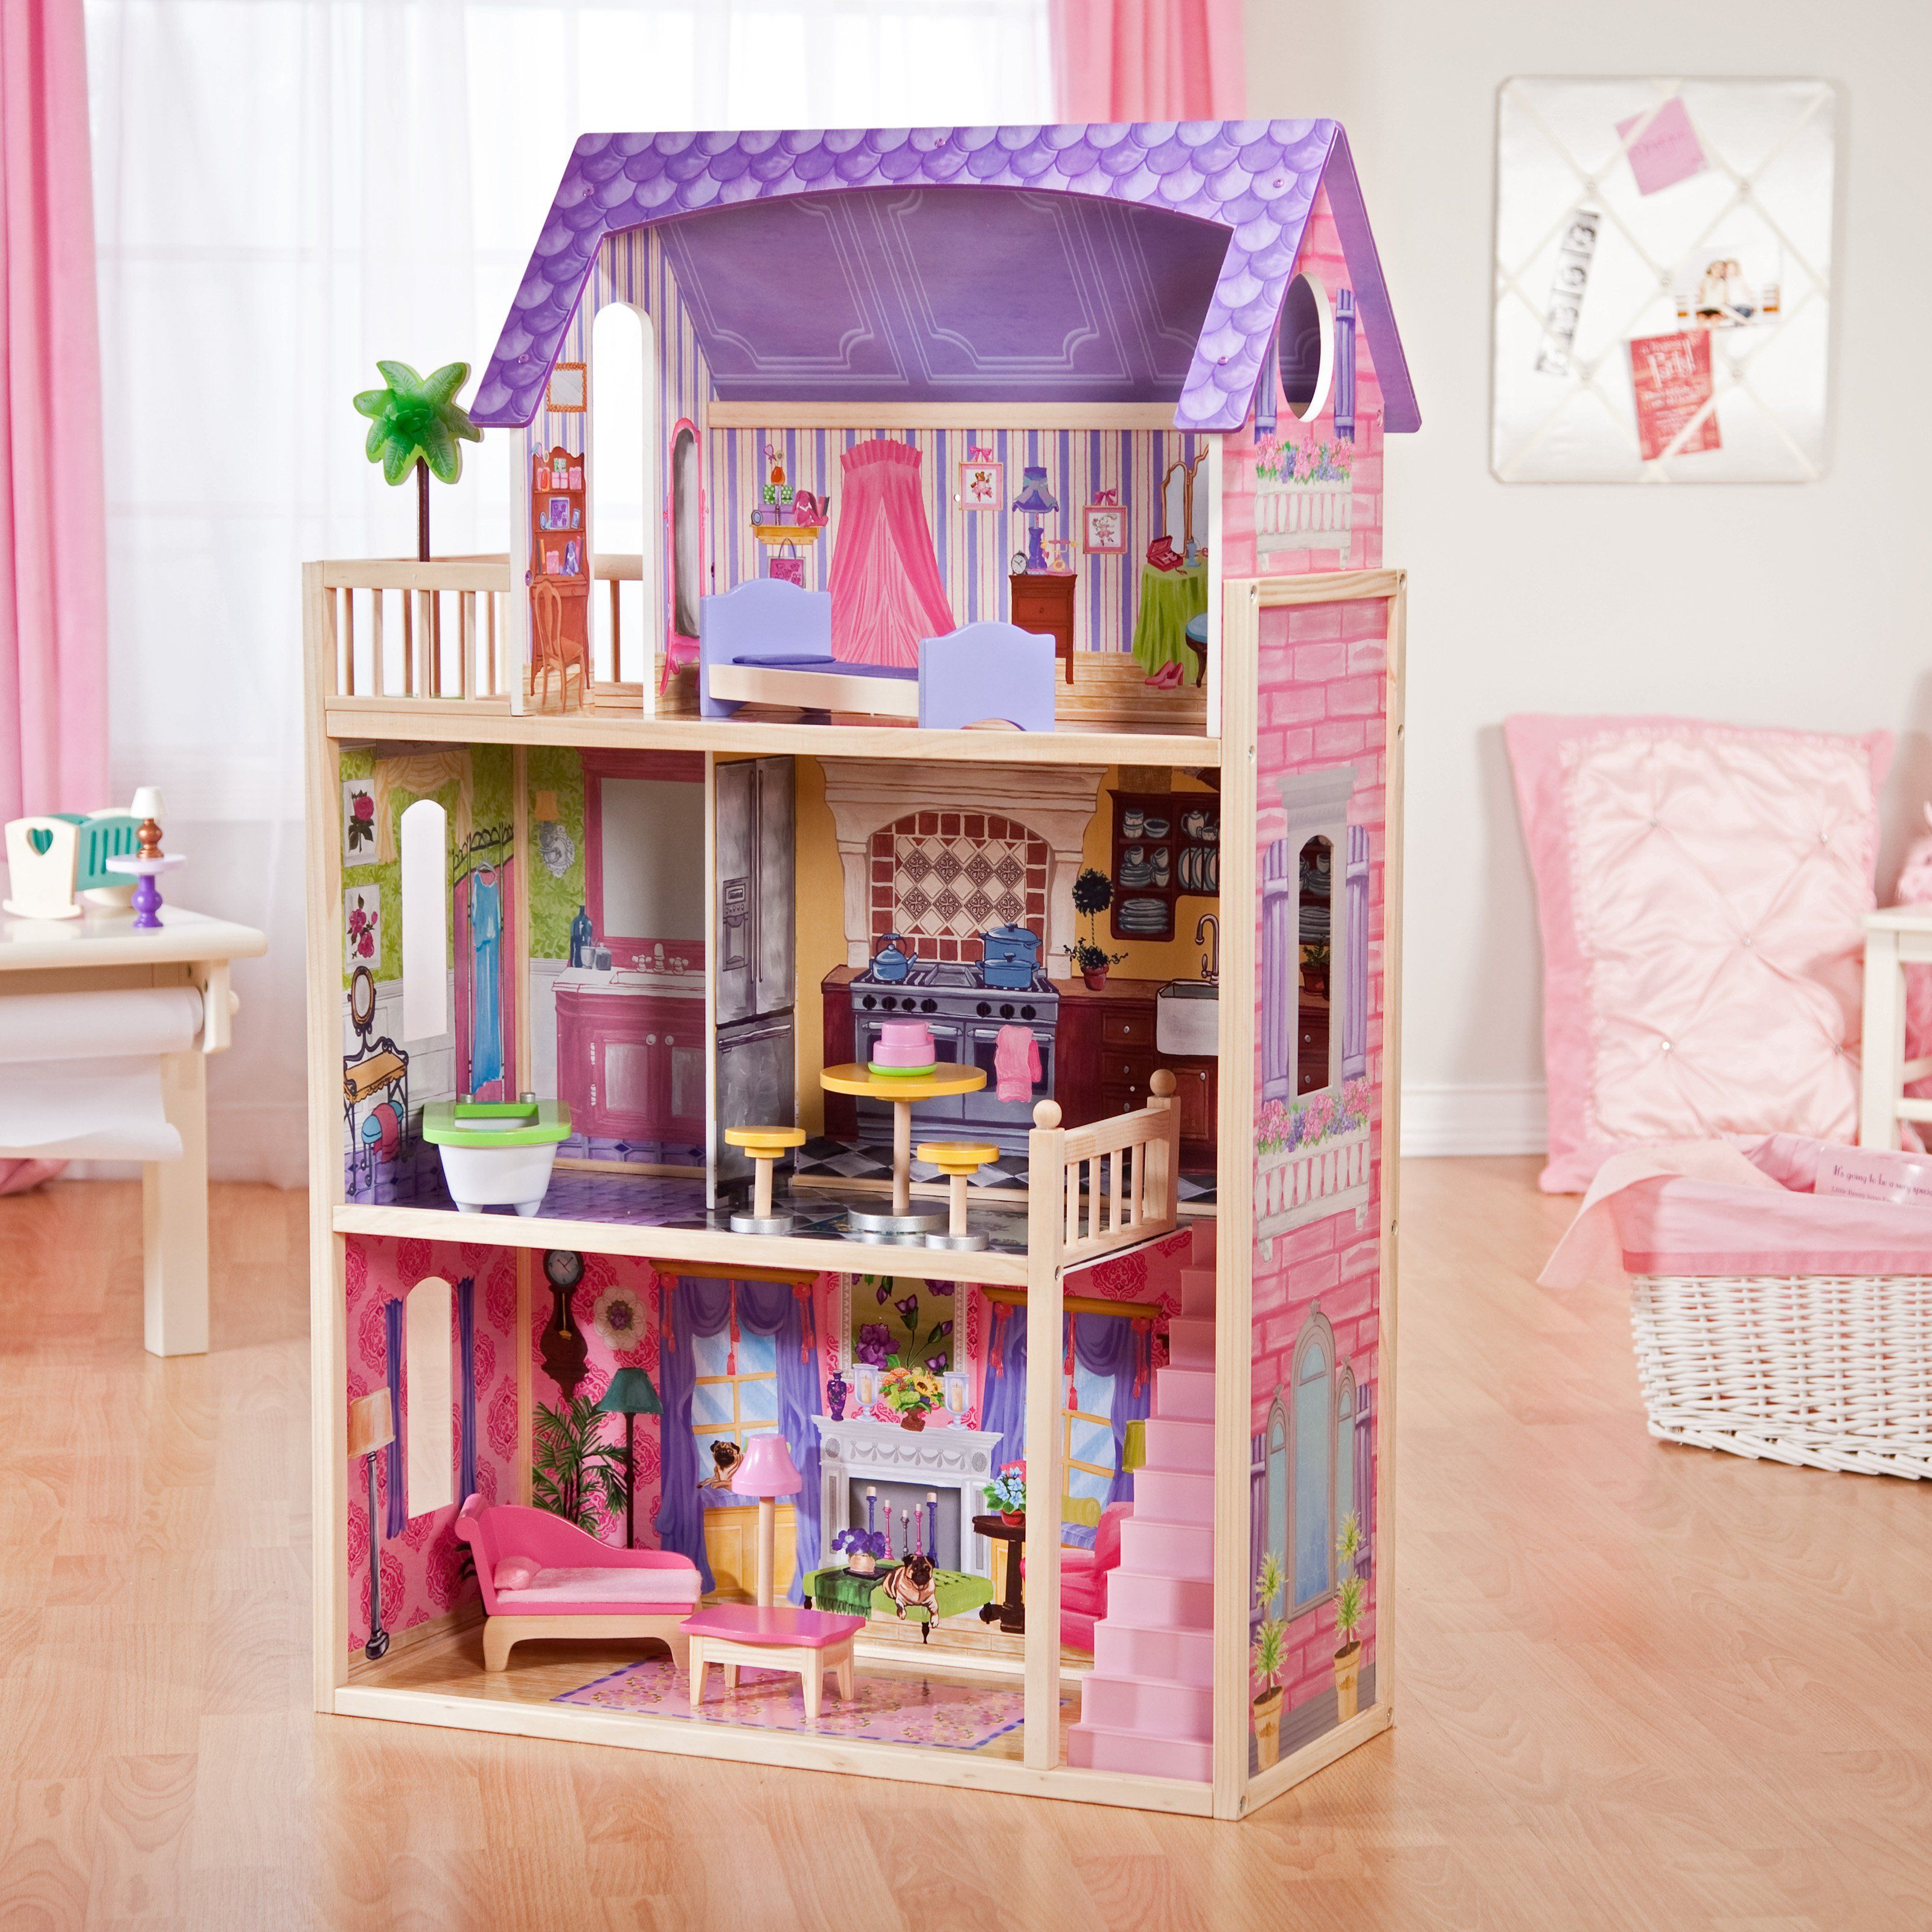 10 awesome barbie doll house models - Kidkraft Kayla Dollhouse The Kidkraft Kayla Dollhouse Is Perfect For Young Girls Who Want Their